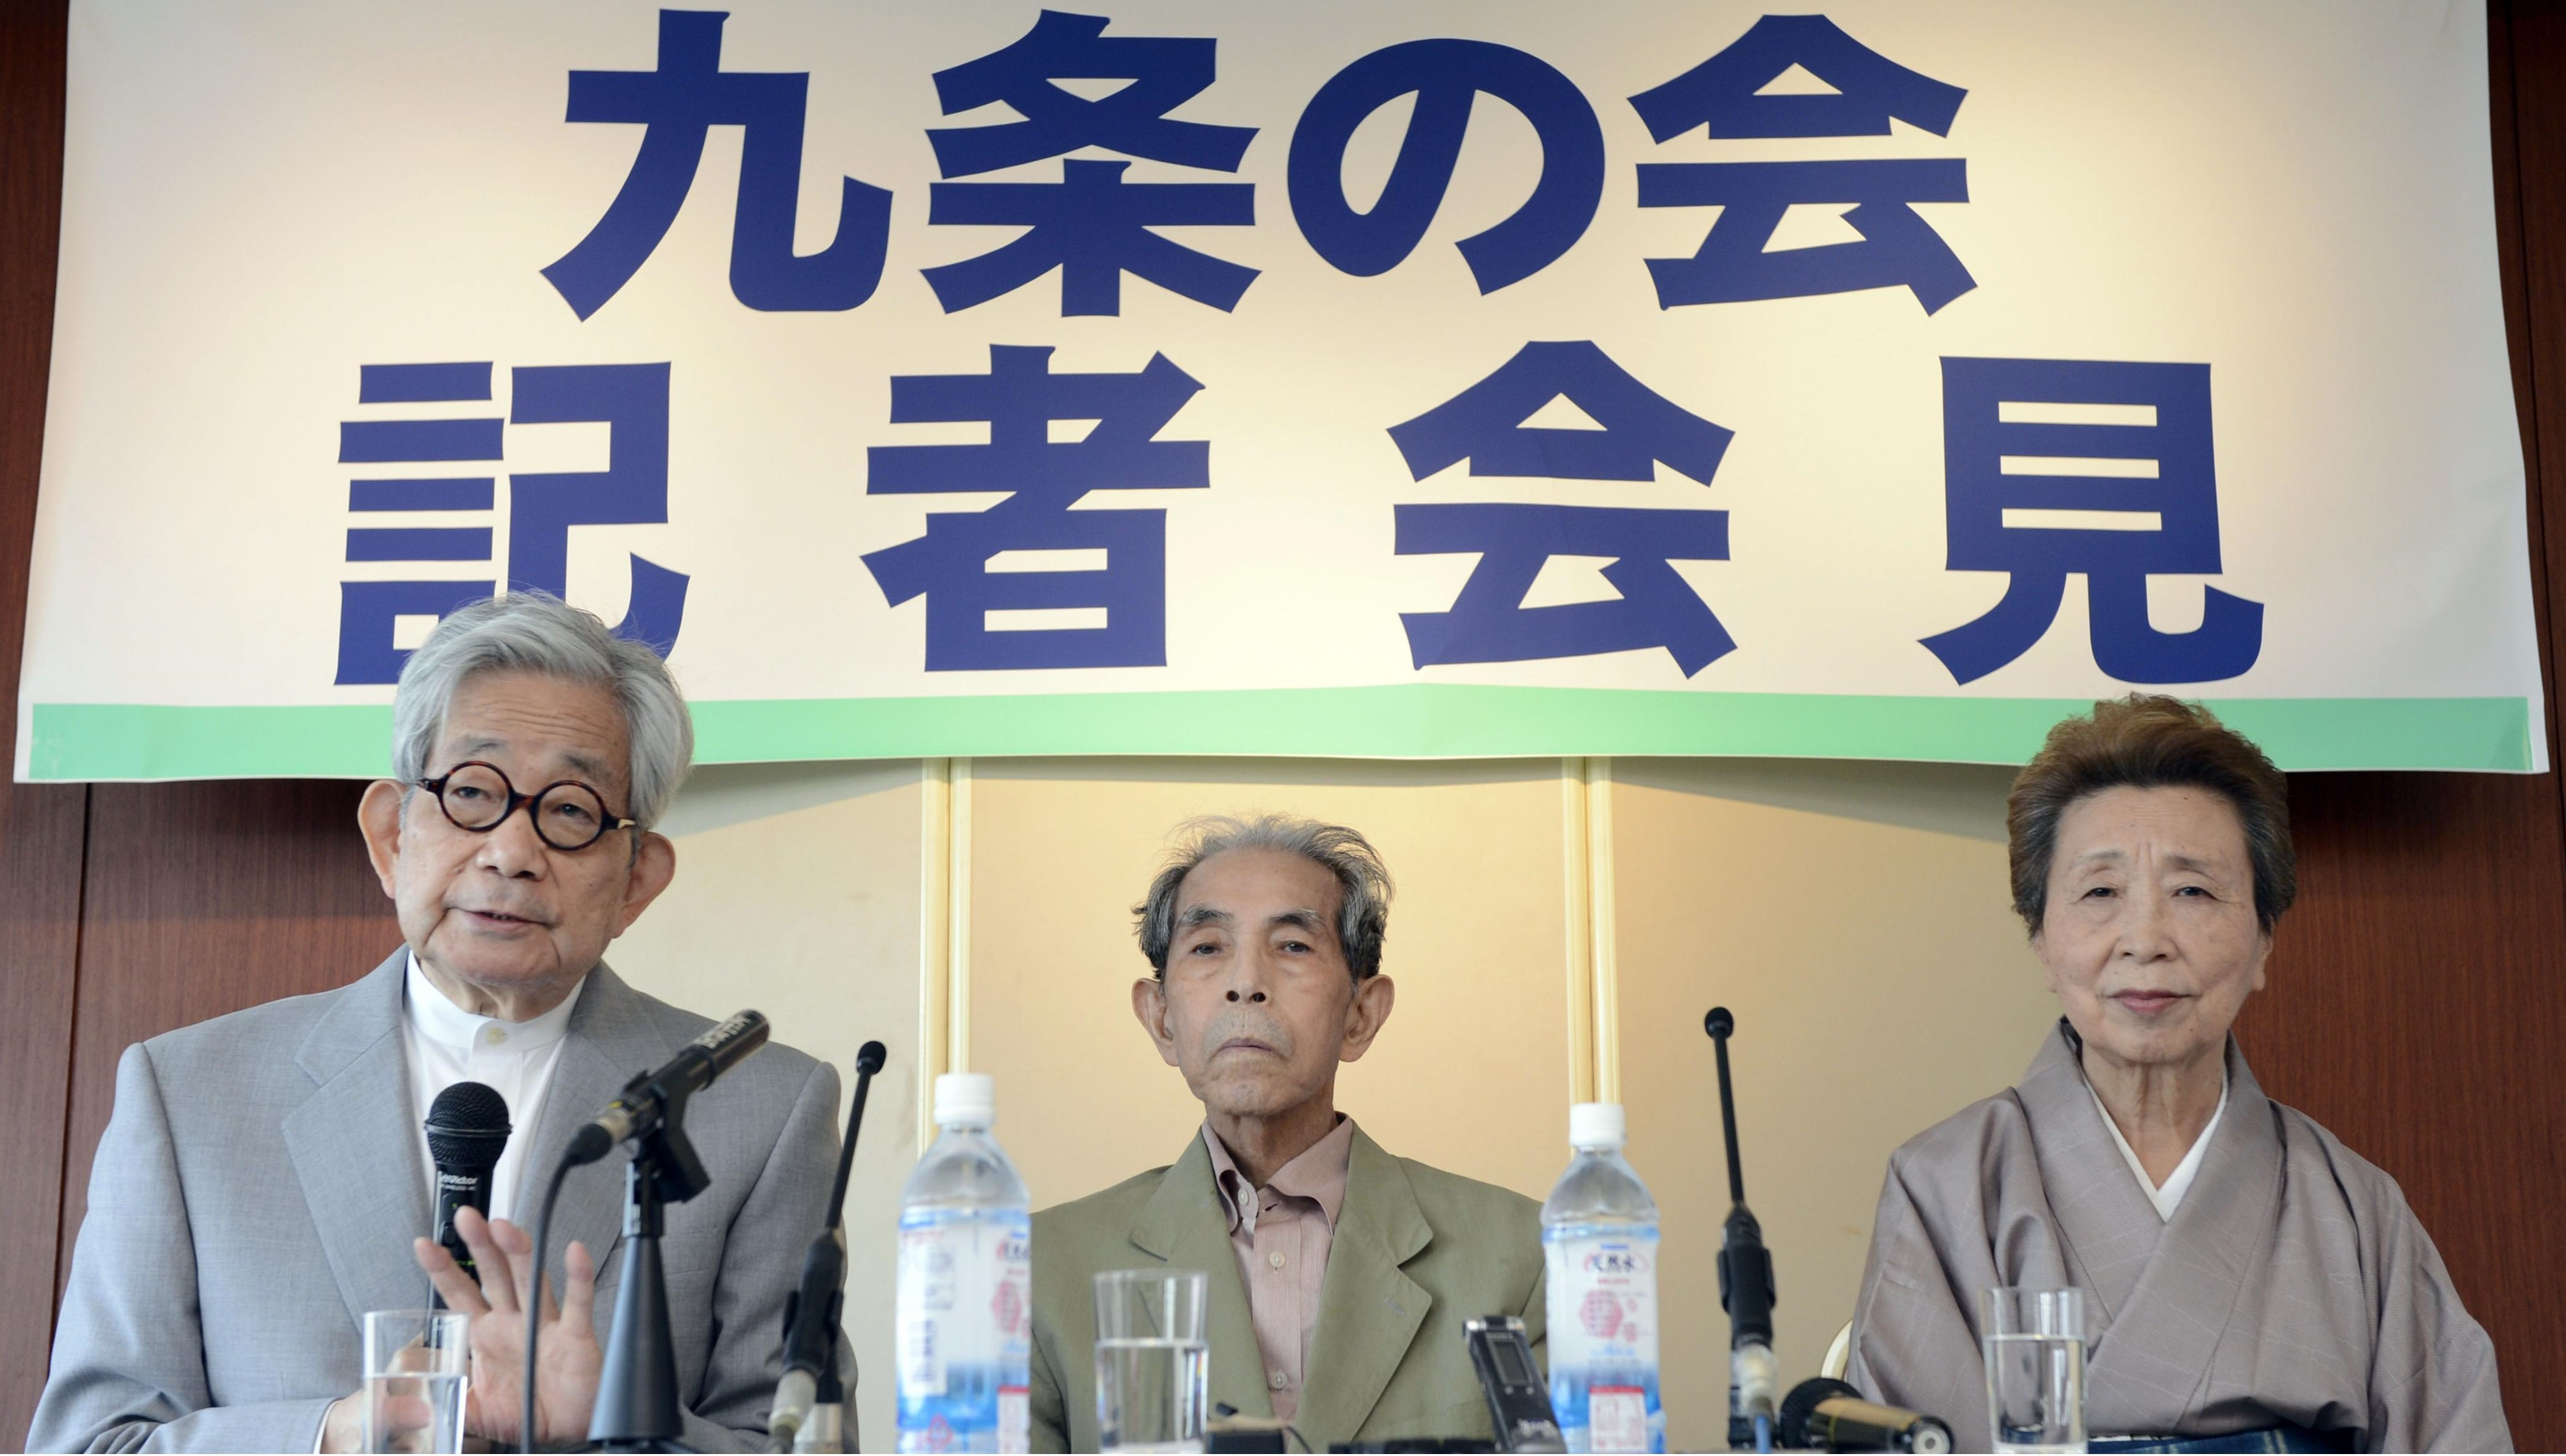 Scholar Yasuhiro Okudaira (center), flanked by Nobel literature laureate Kenzaburo Oe and writer Hisae Sawachi, faces the media during a news conference in May 2013. He was one of the key members of the Article 9 Association, a group that is dedicated to defending war-renouncing Article 9 of the Constitution. | KYODO